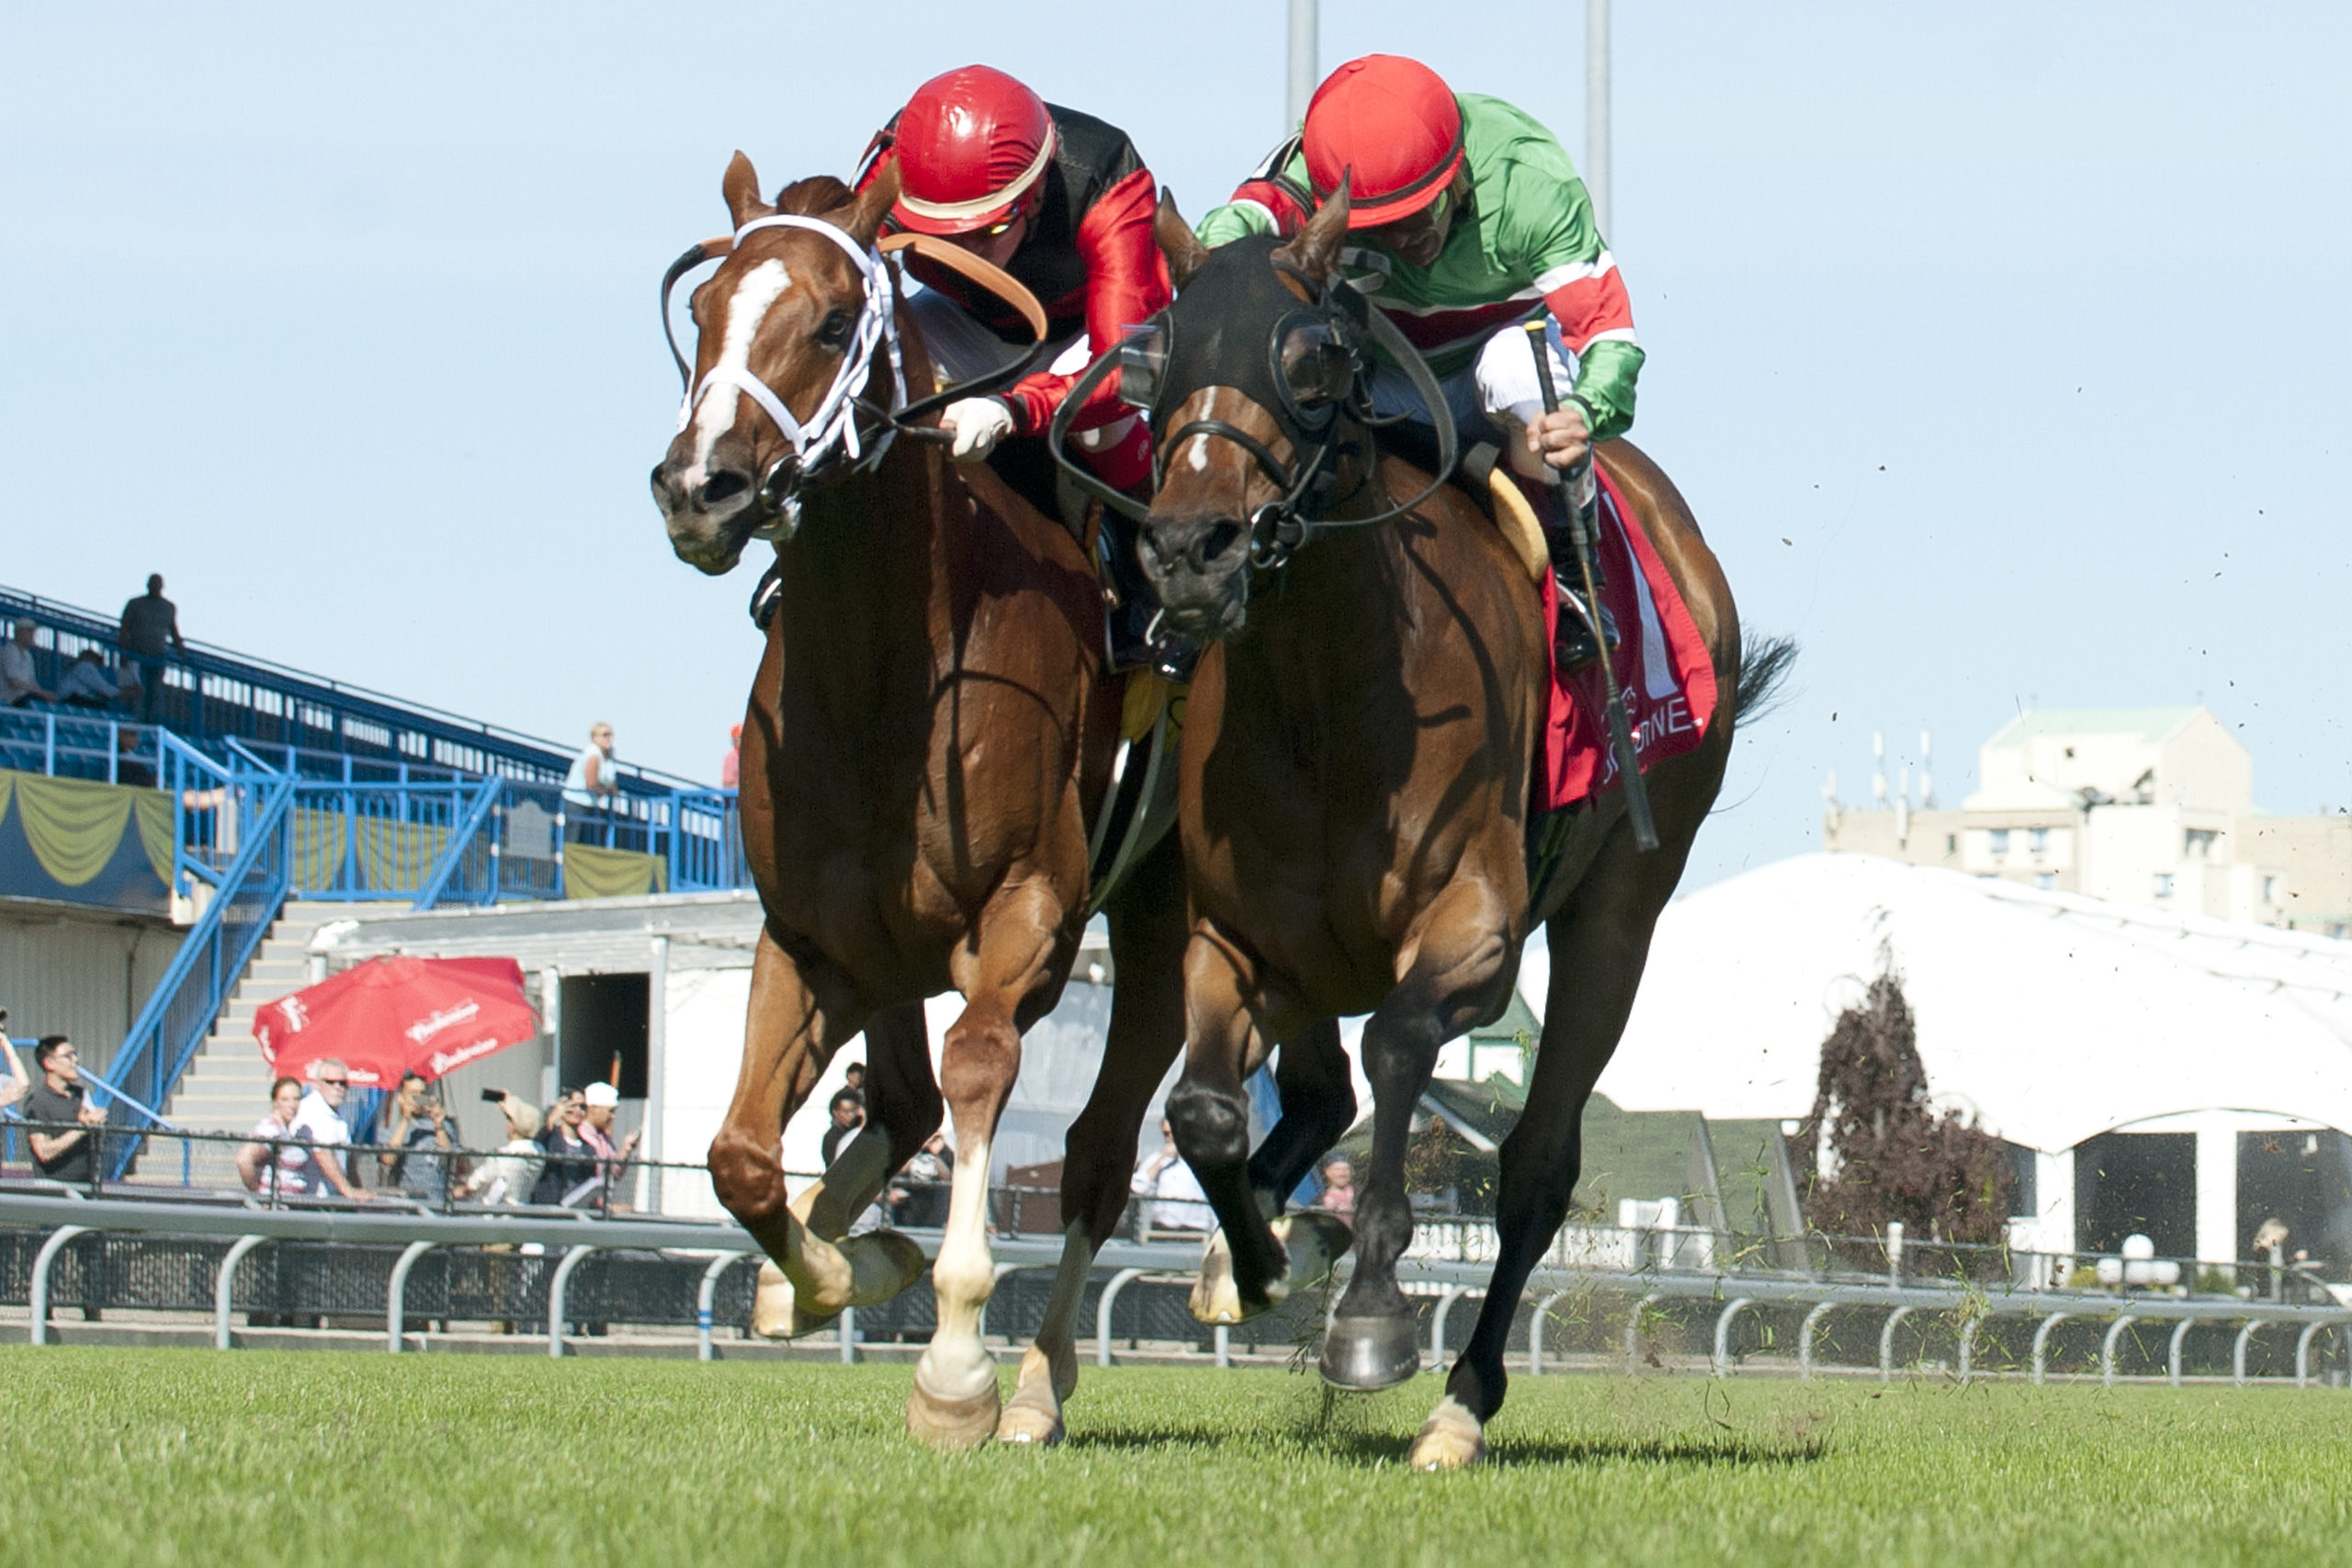 Thumbnail for 'Texas' Hold 'em: Tower of Texas Wins Connaught Cup Thriller